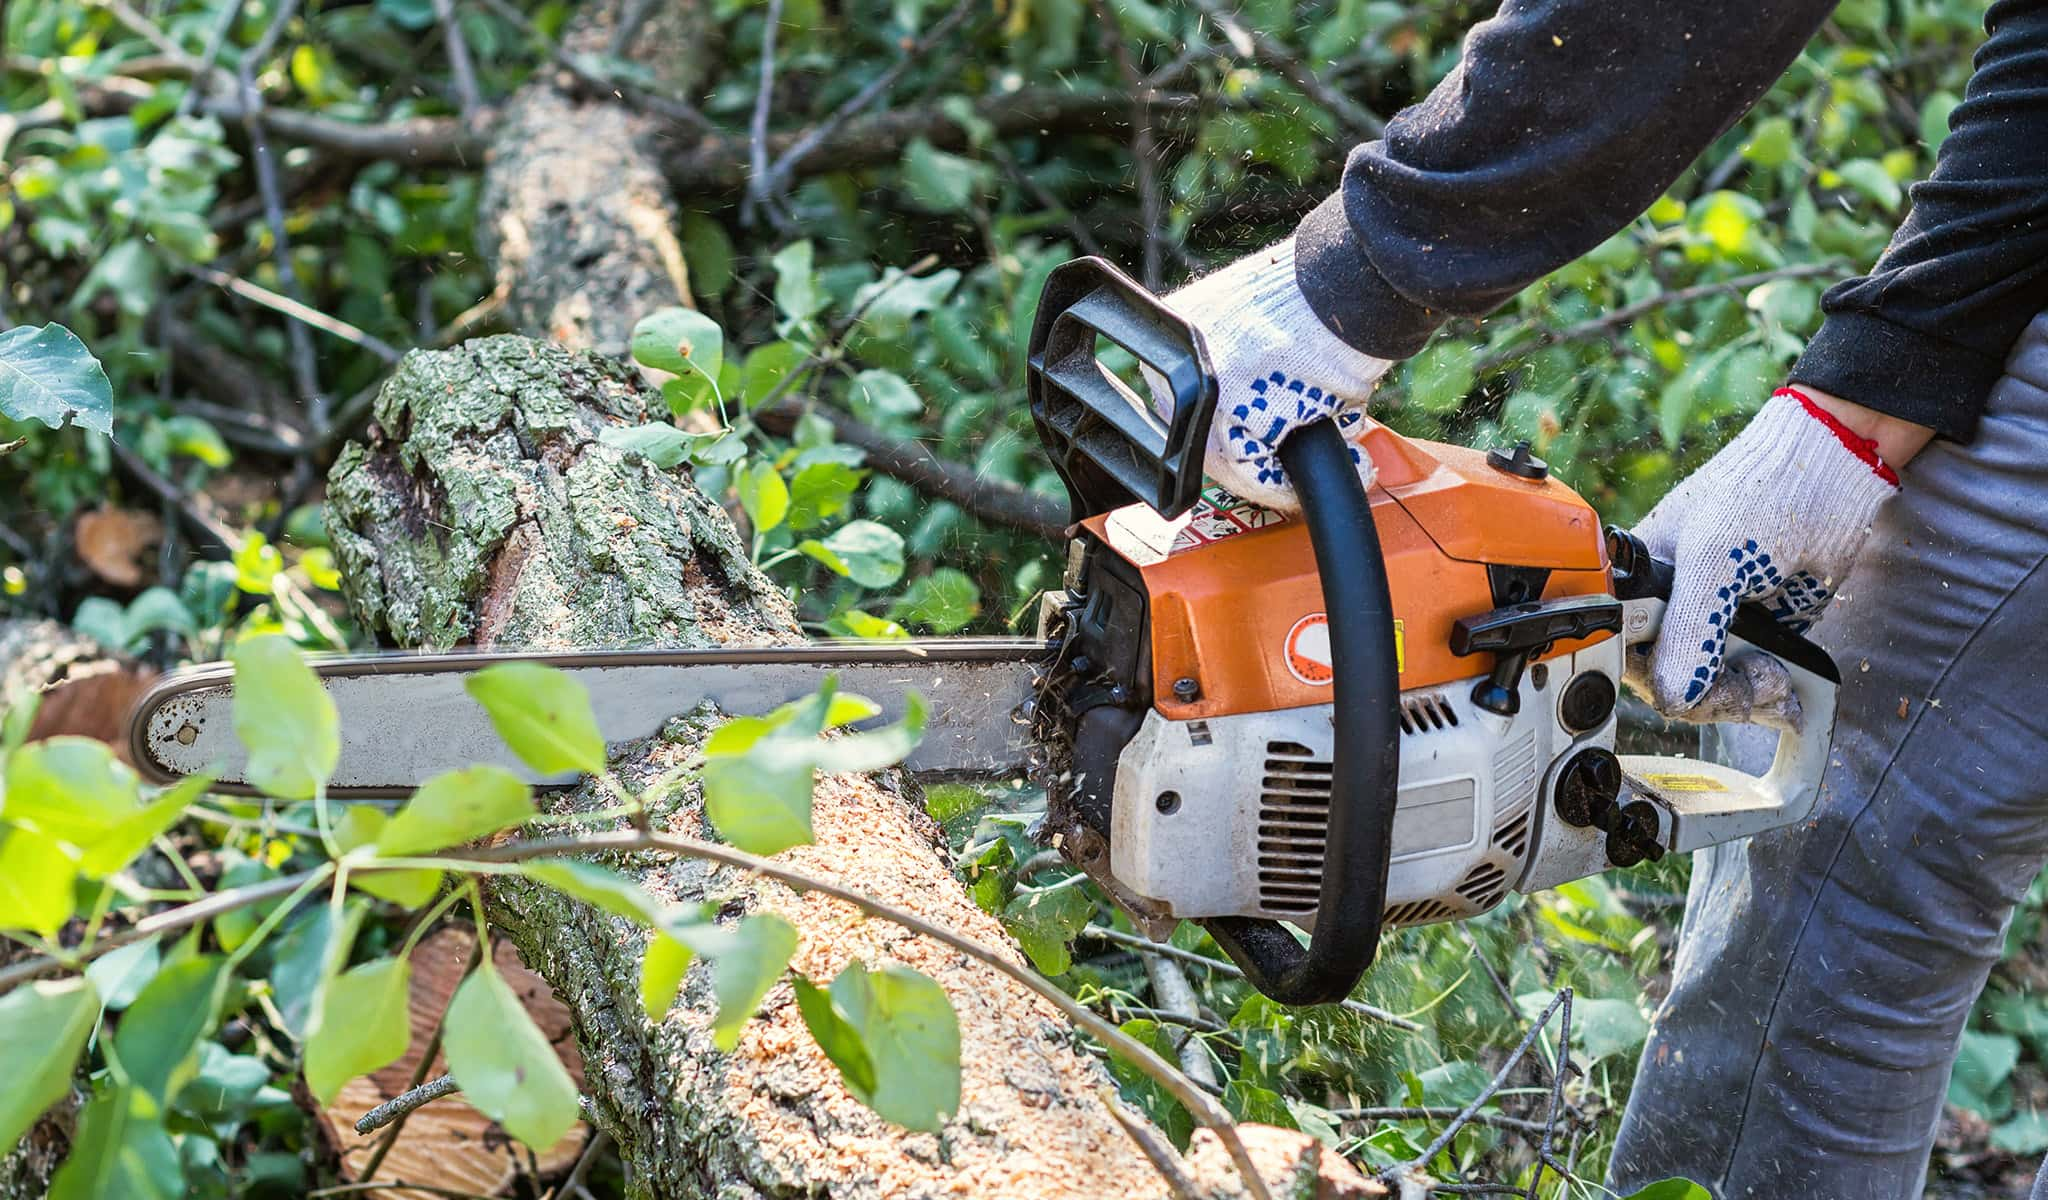 Arbor Services worker chainsawing tree for removal